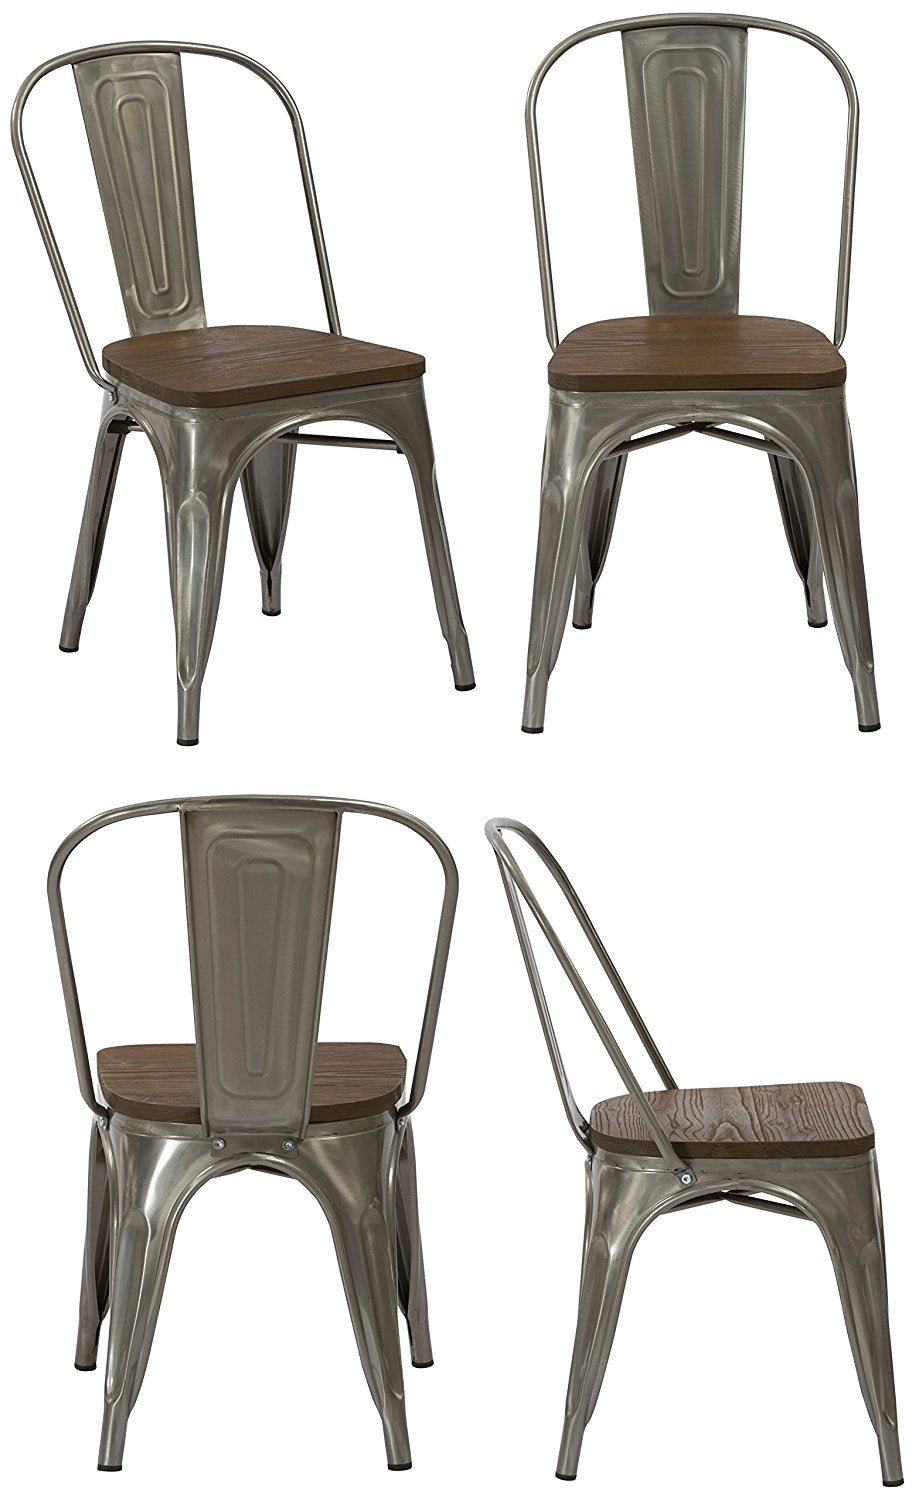 Industrial Wood Antique Gunmetal Rustic Distress Dining Chairs, Set of 4